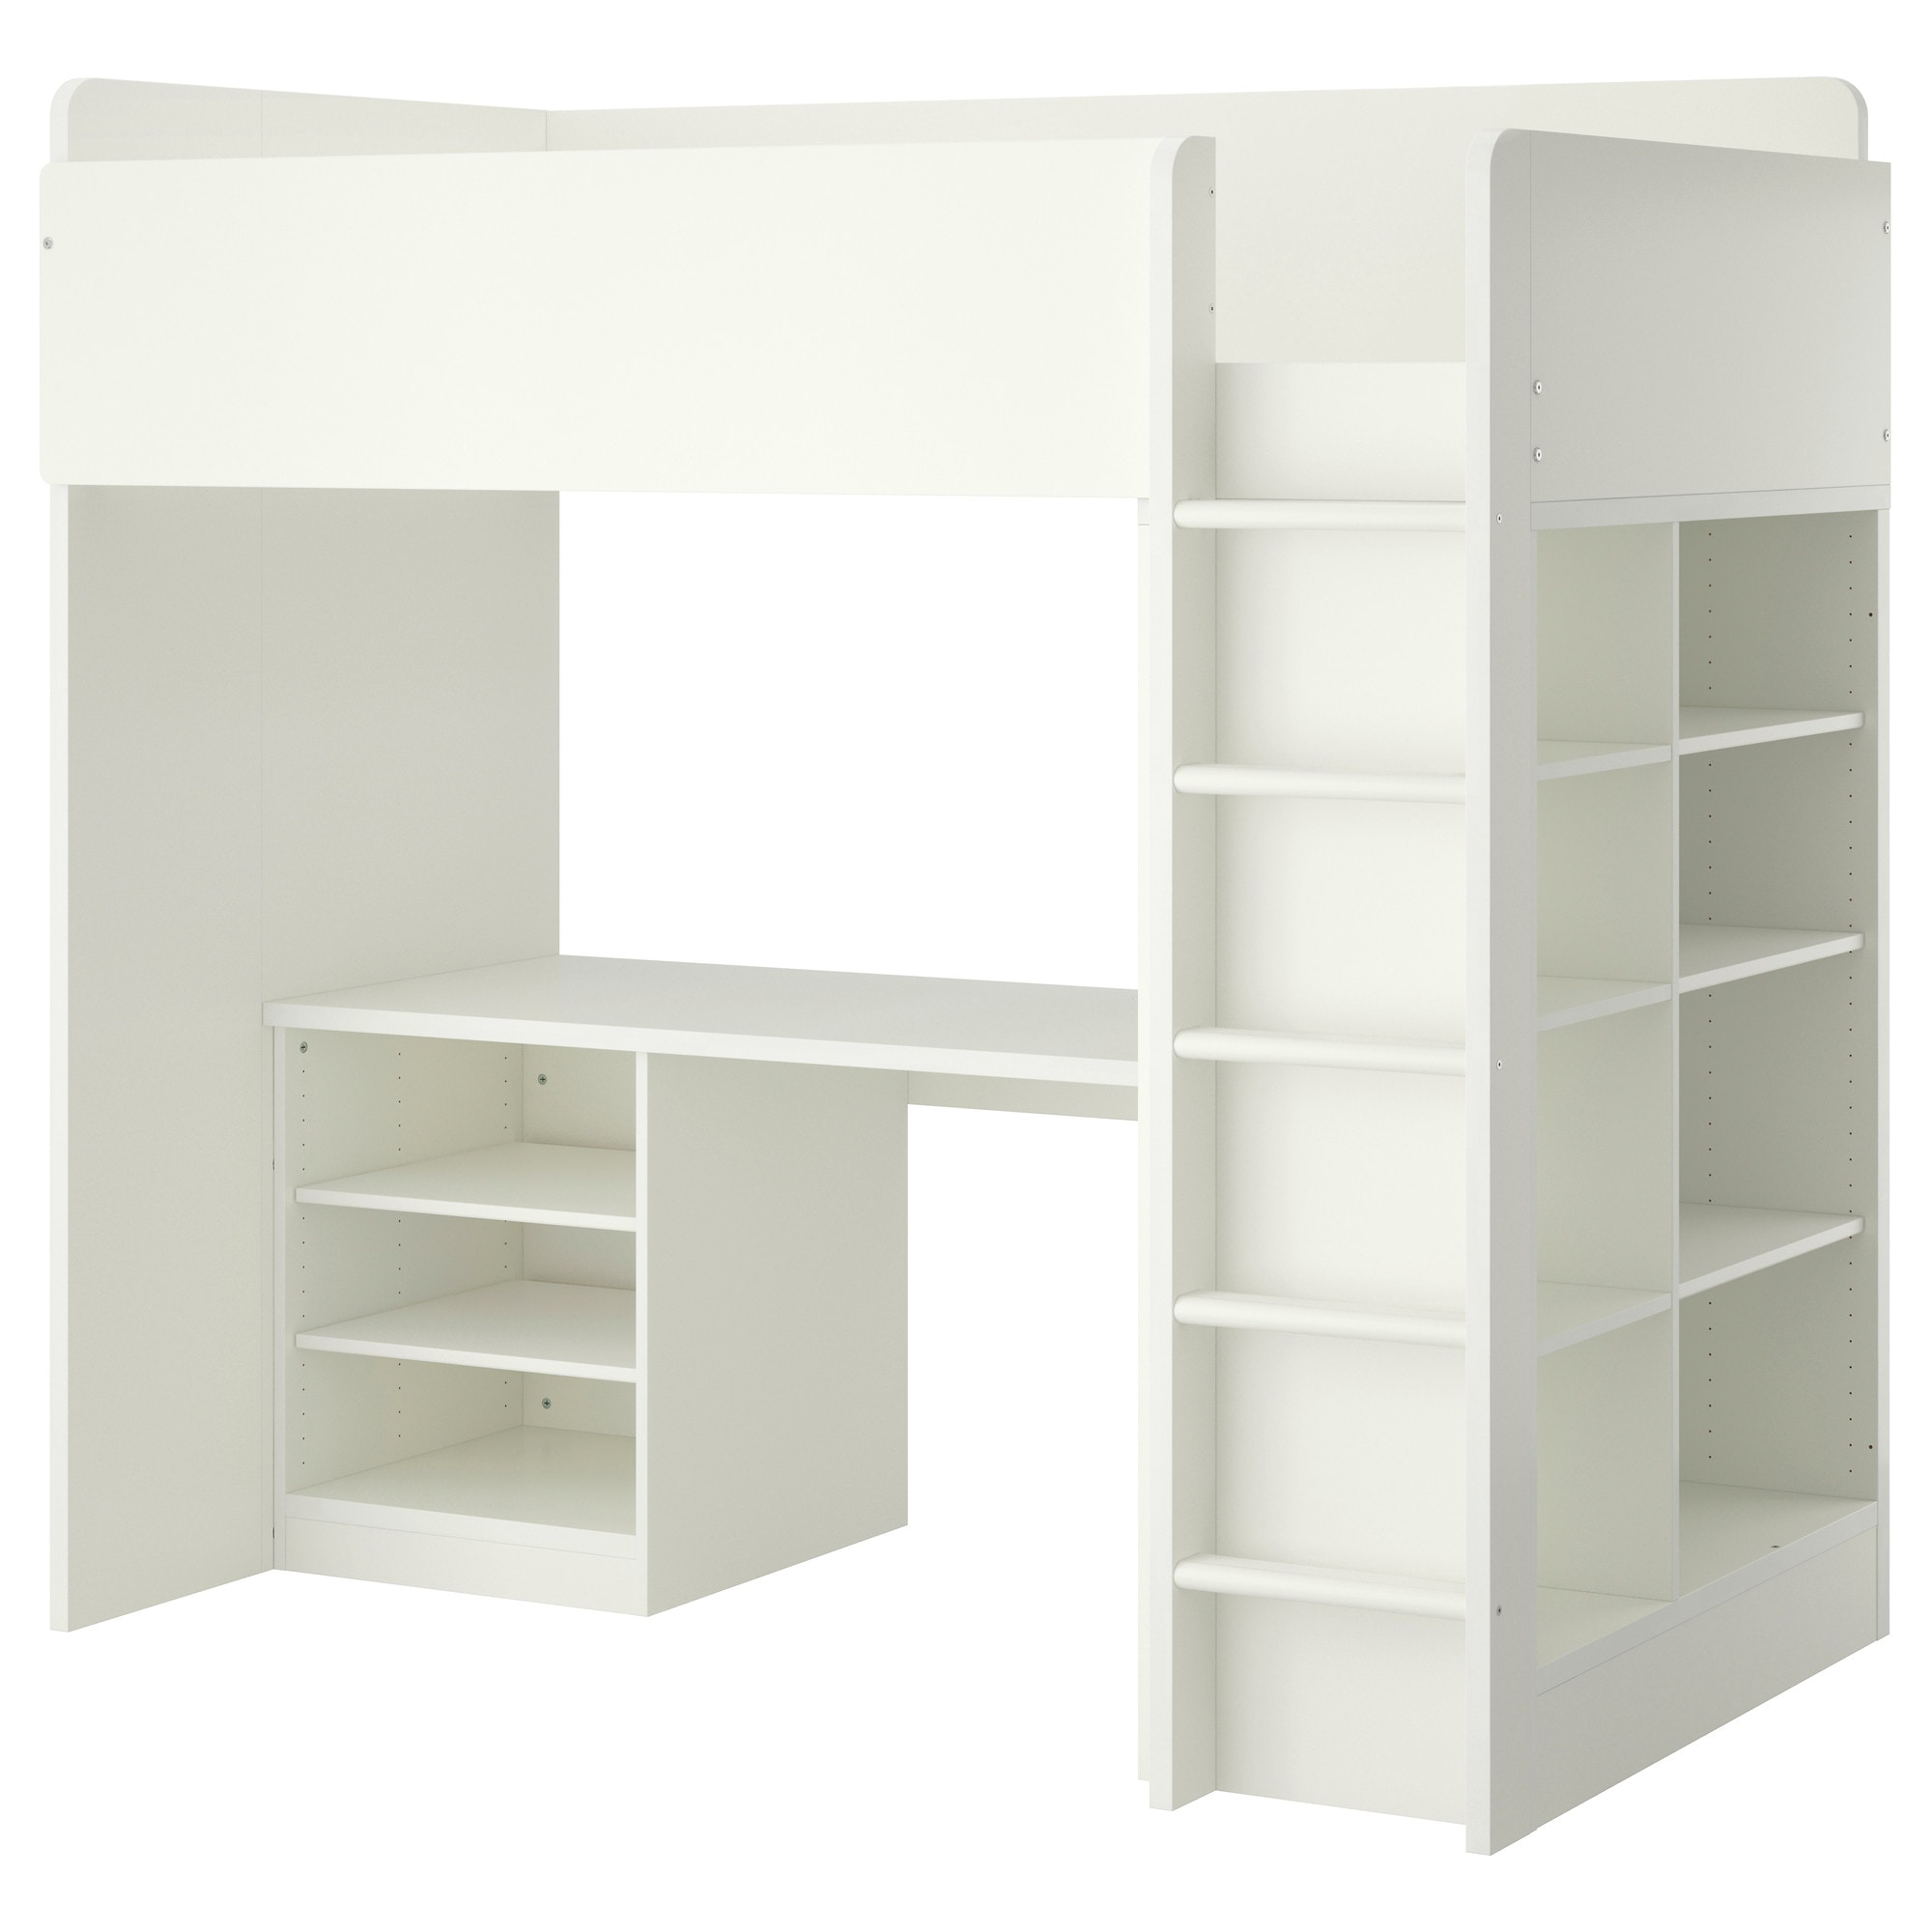 Bunk bed with desk ikea - Stuva loft bed combo w 2 shlvs 3 shlvs white height 76